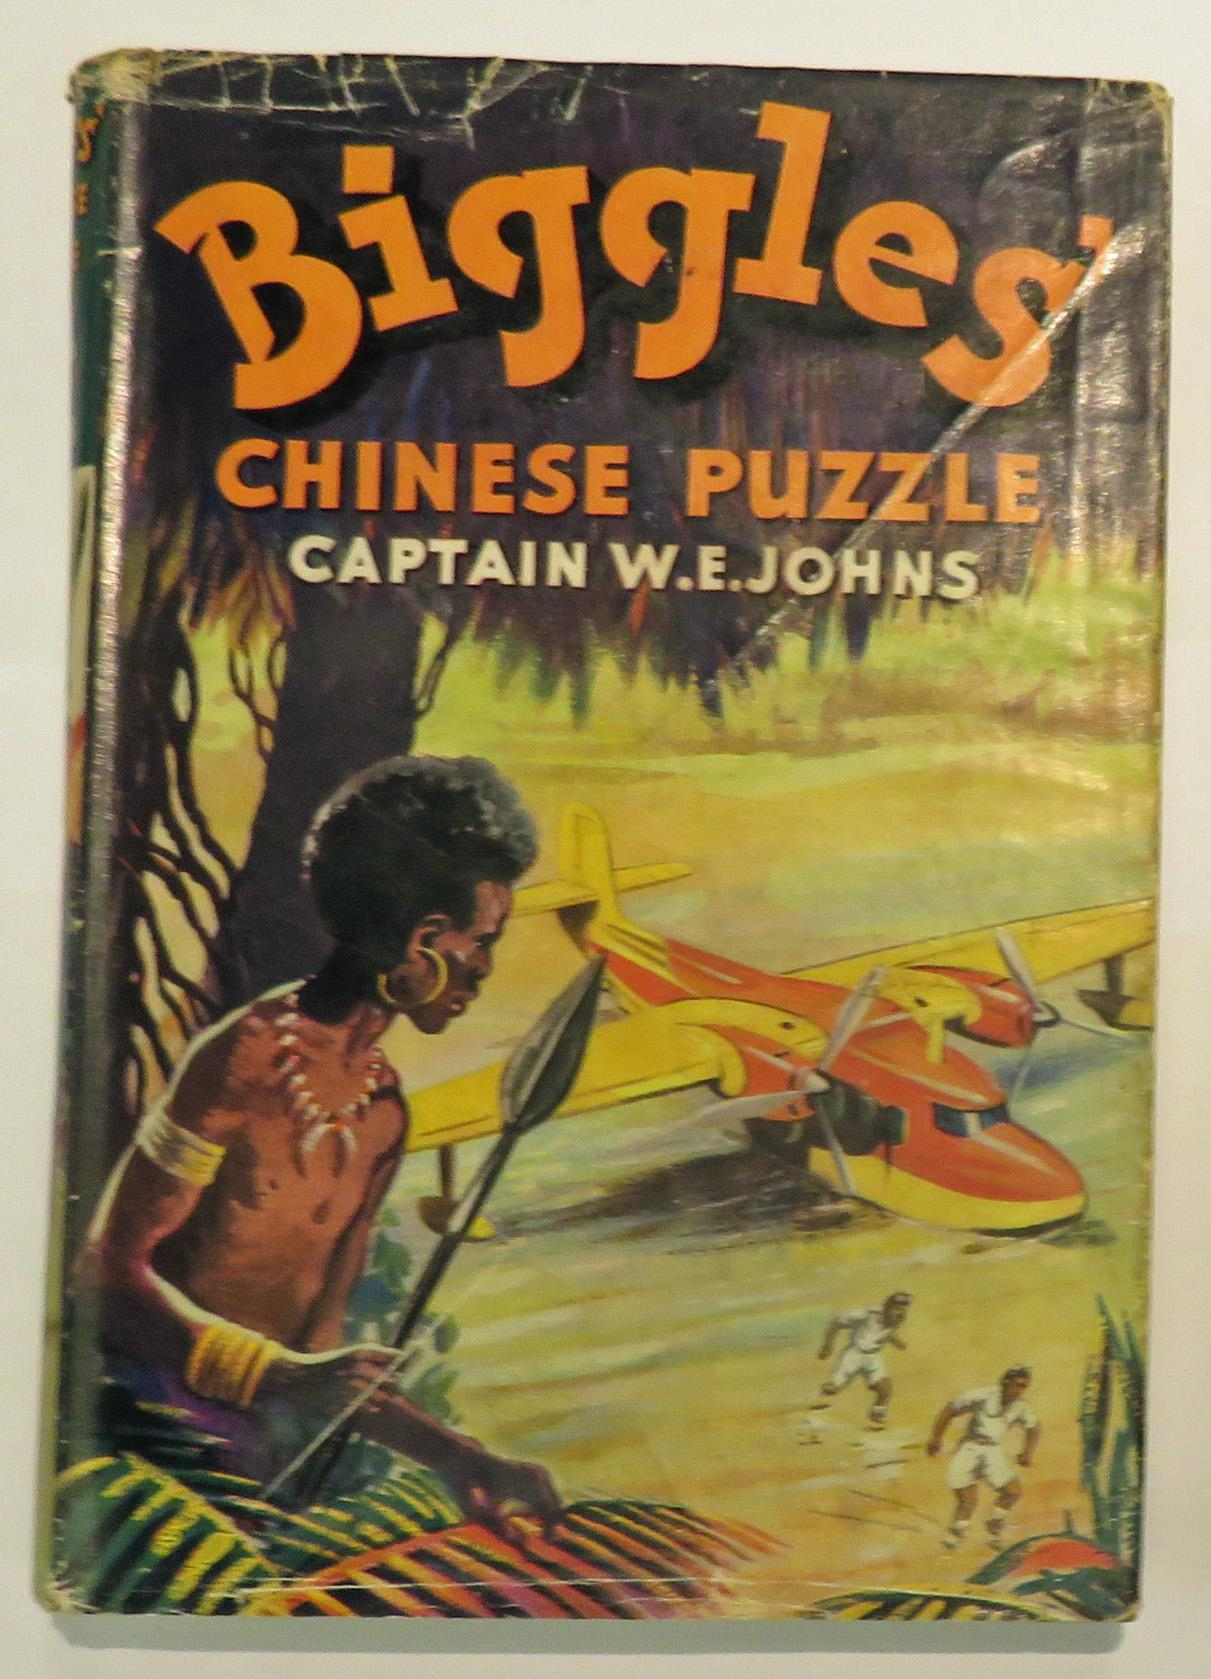 Biggles Chinese Puzzle